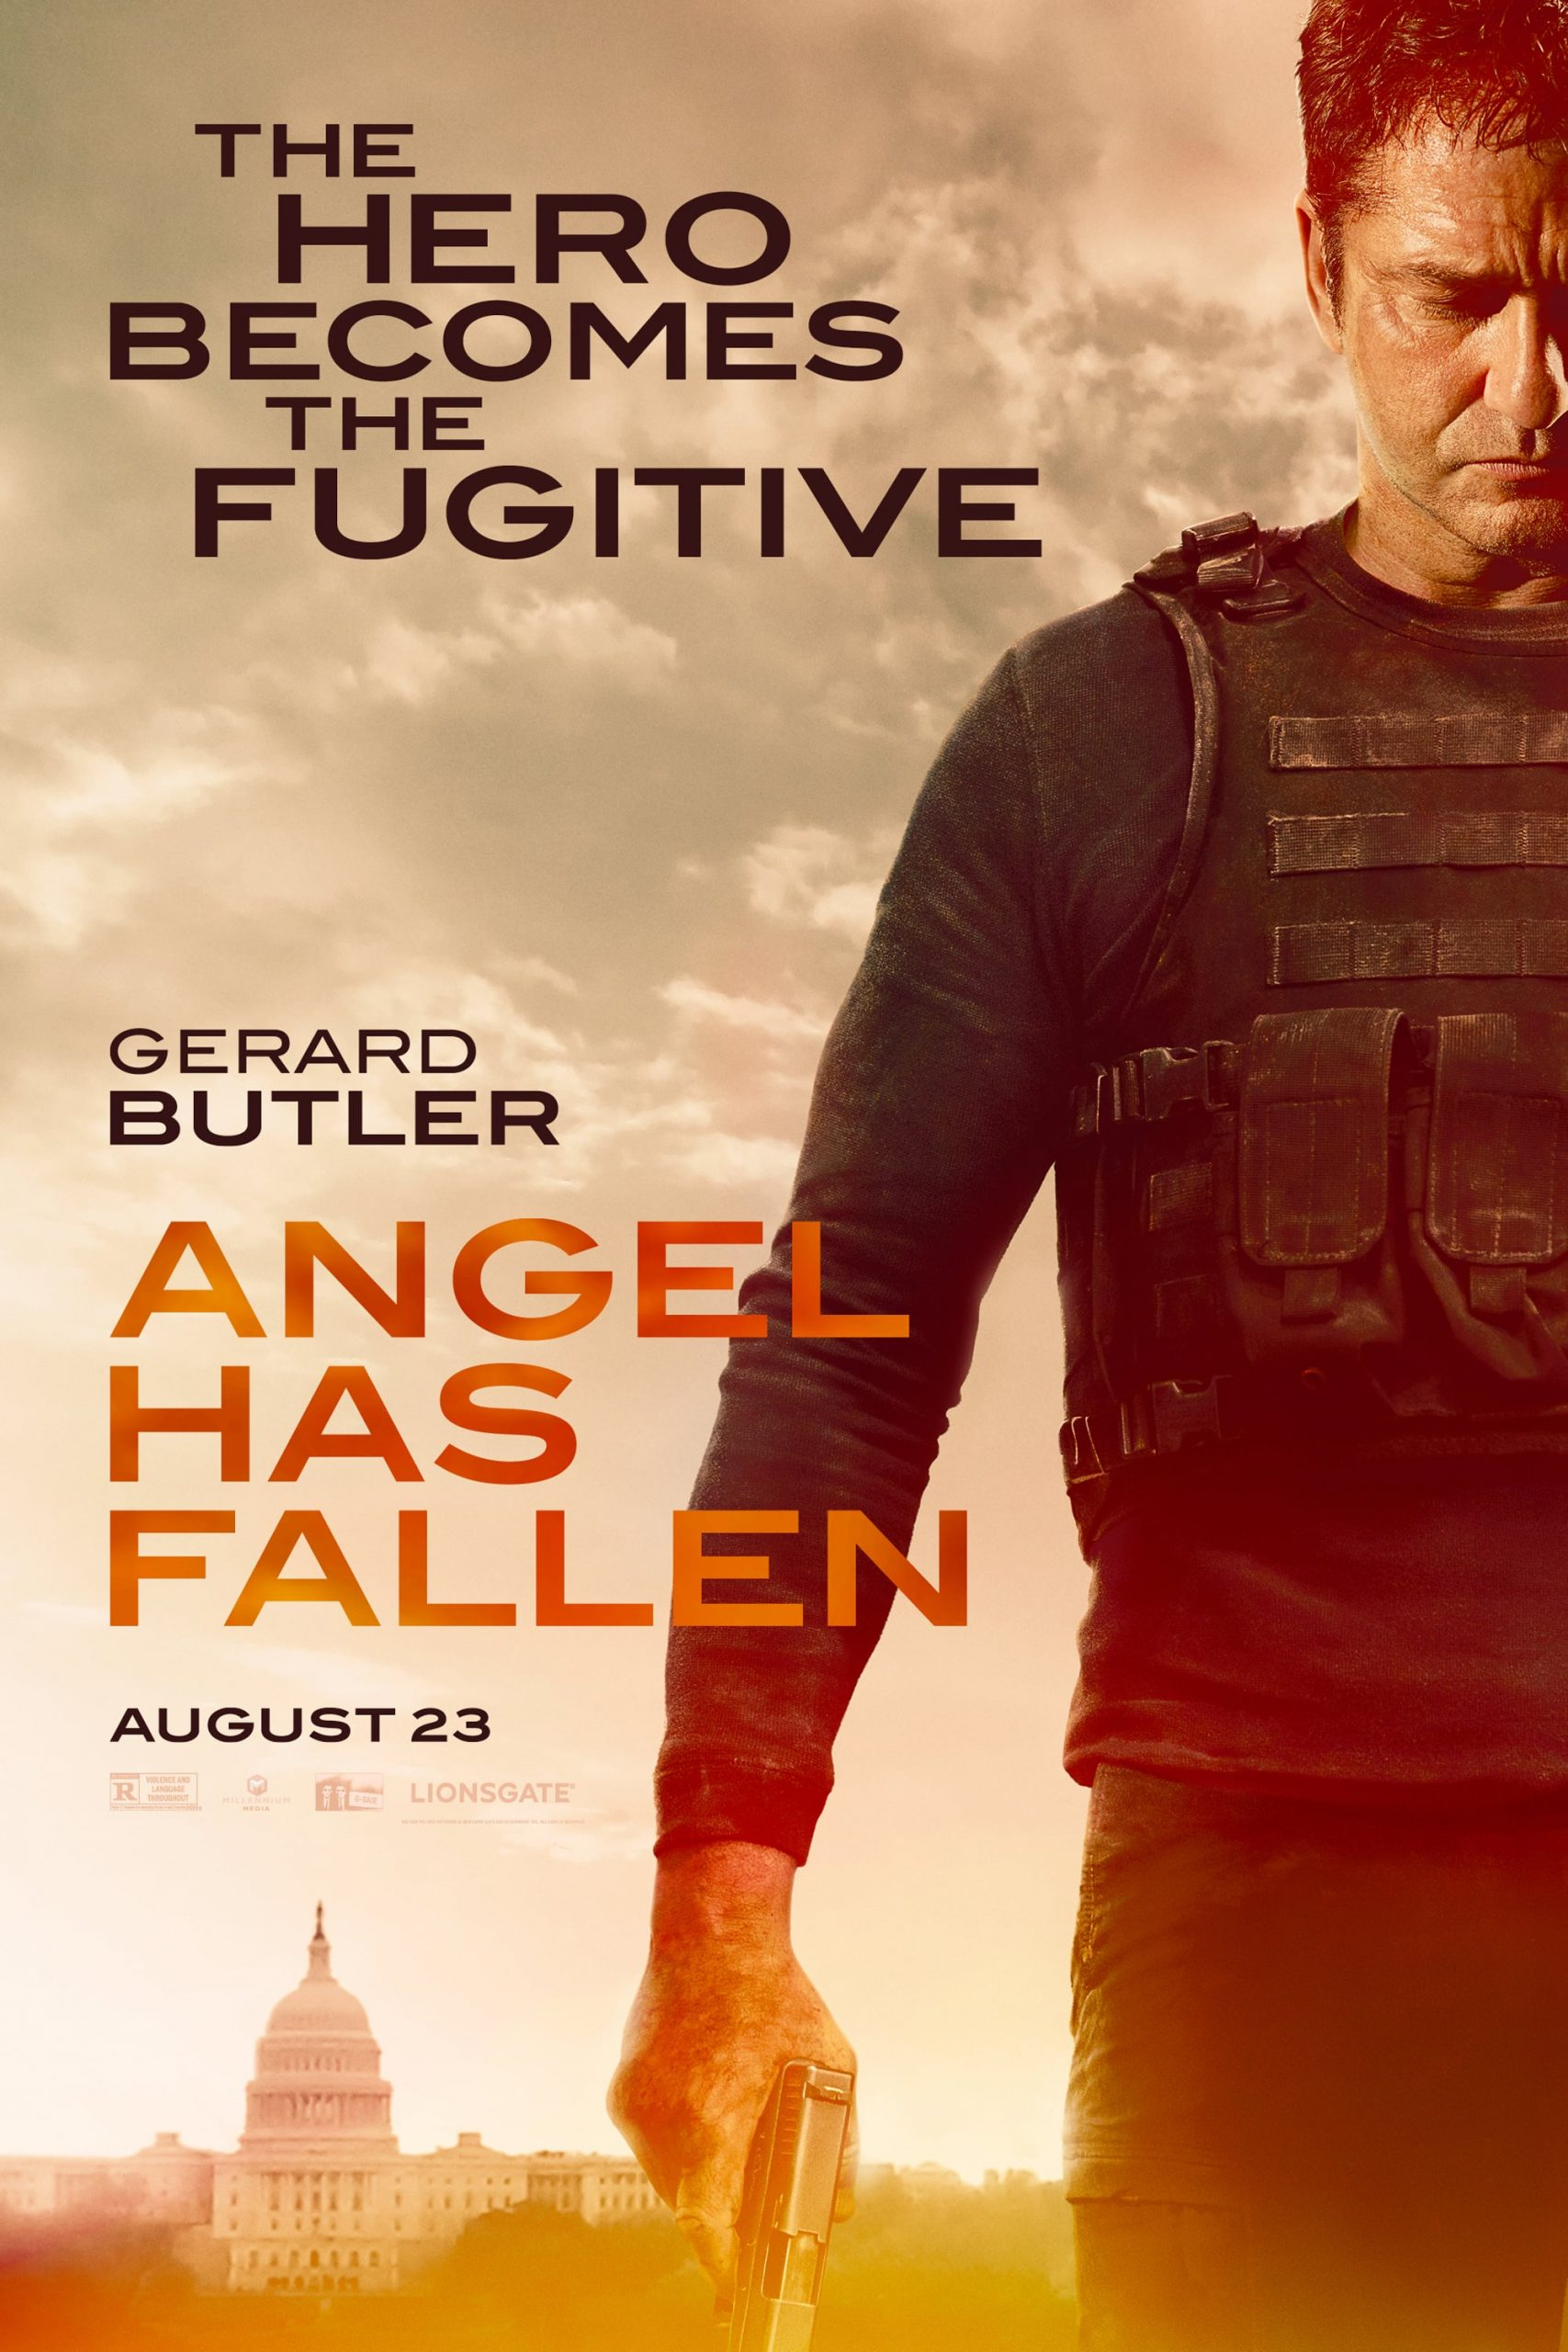 Angel Has Fallen Character Posters Gerard Butler as Secret Service agent Mike Banning